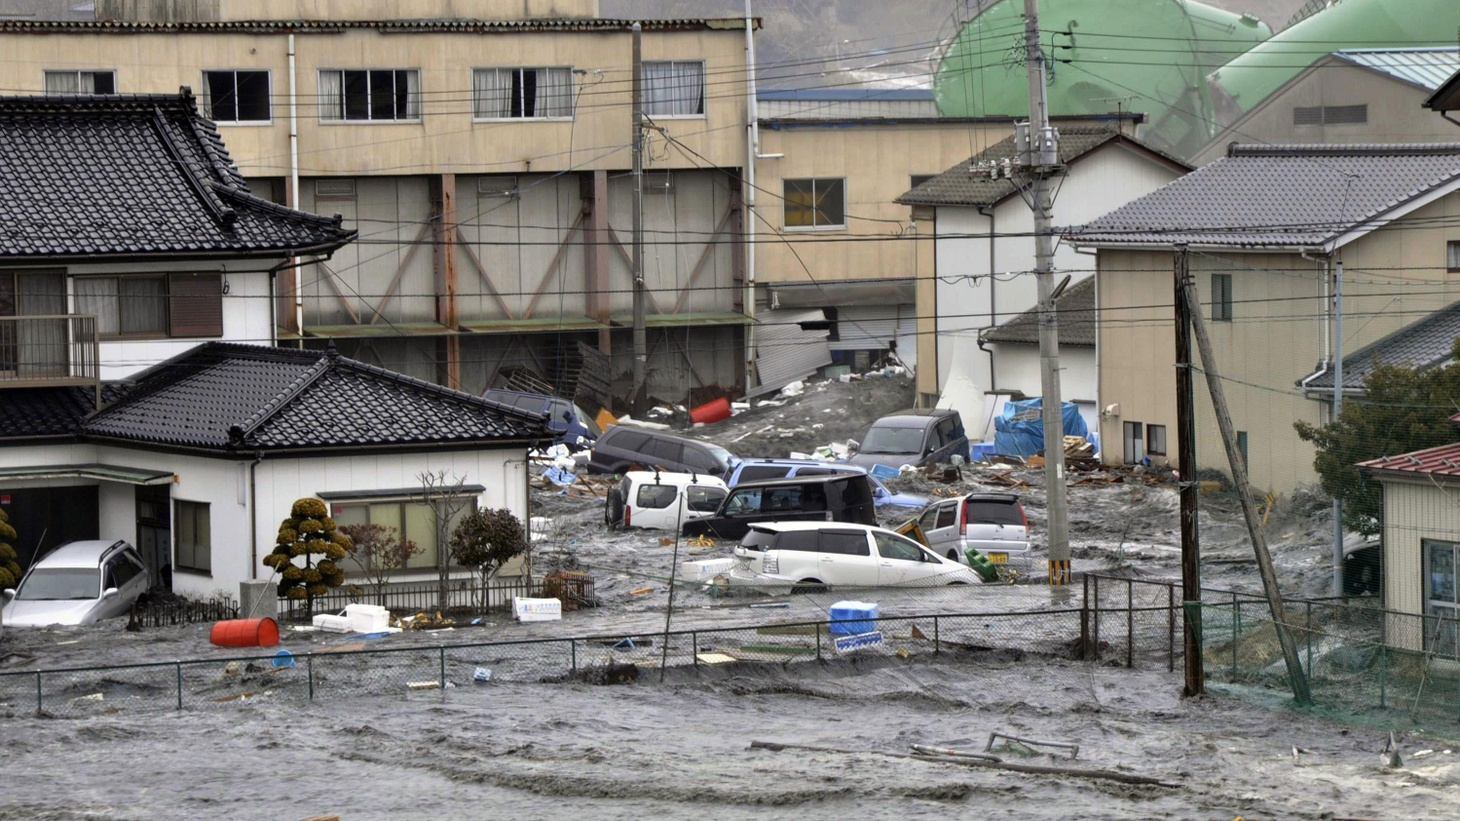 Japan is asking for international assistance after a 8.9 earthquake - one of the world's largest in the past 100 years, followed by a devastating tsunami.